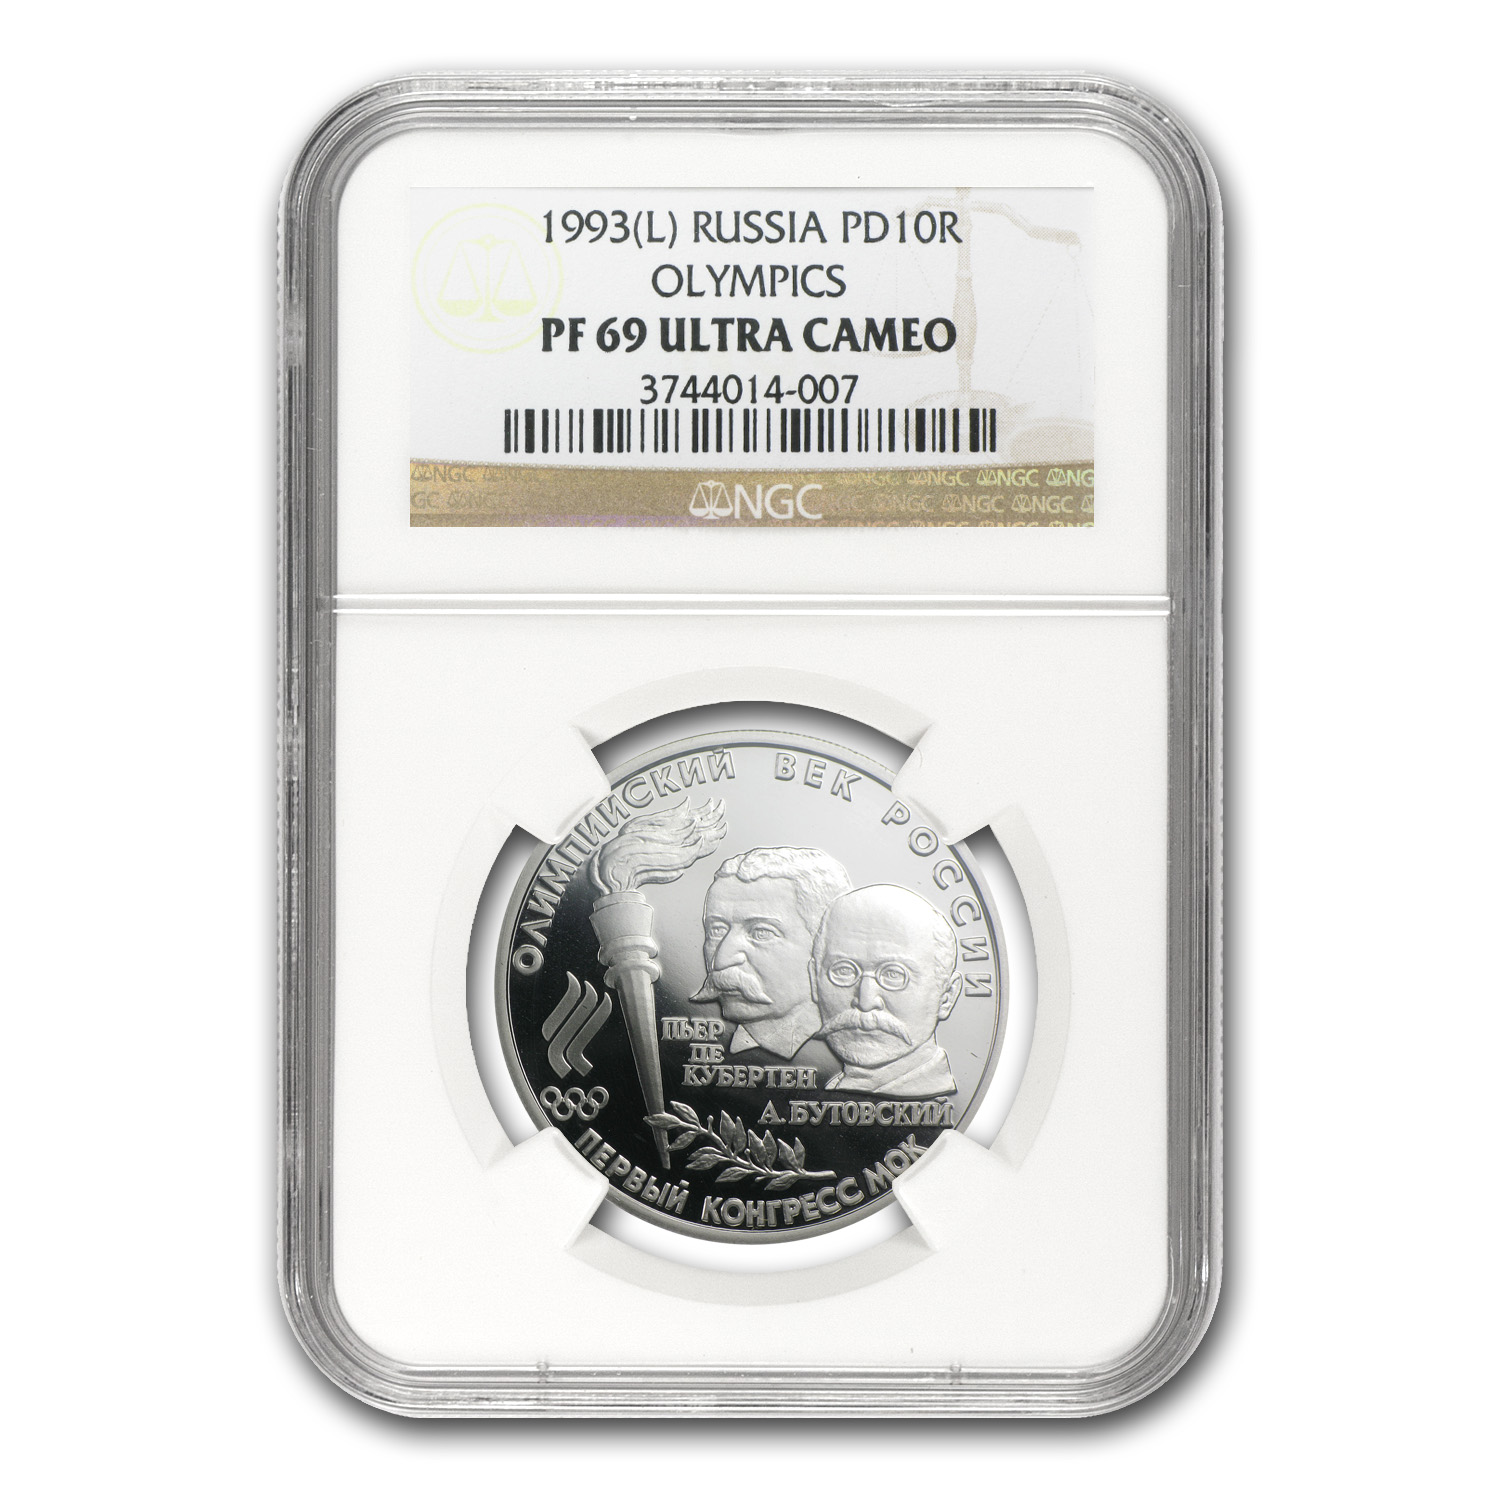 1993 Russia 1/2 oz Palladium Olympic 10 Rouble PF-69 NGC